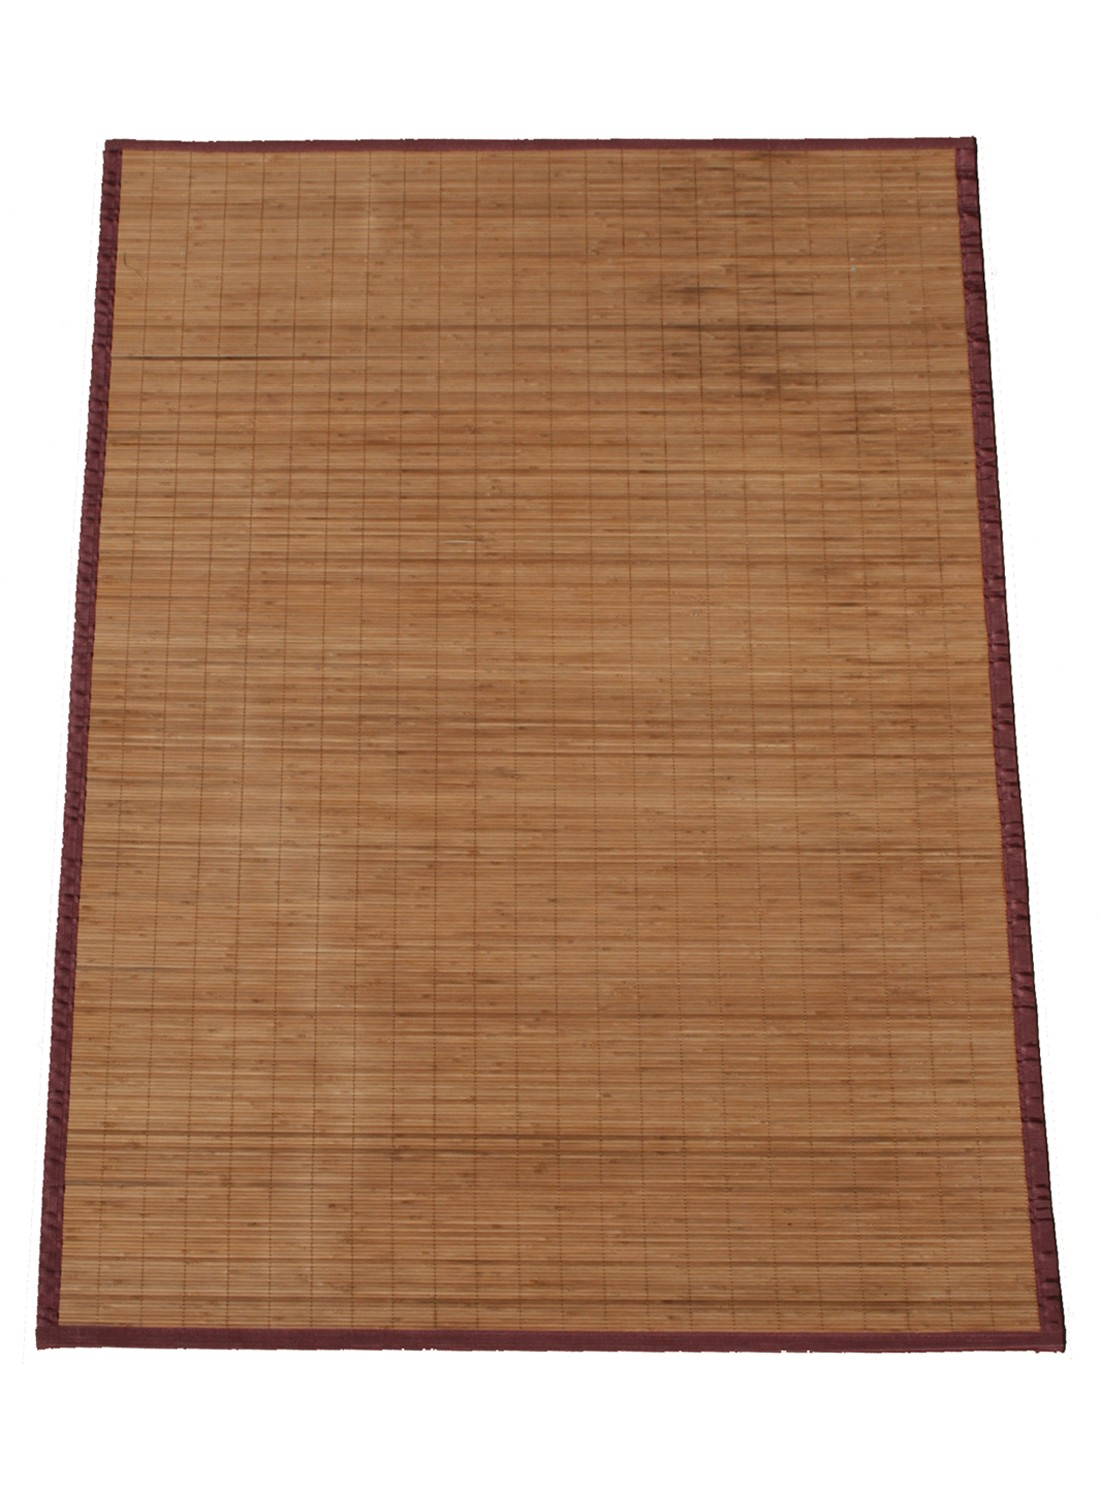 tapis bambou bali naturel en fibres v g tales de la collection dezenco. Black Bedroom Furniture Sets. Home Design Ideas